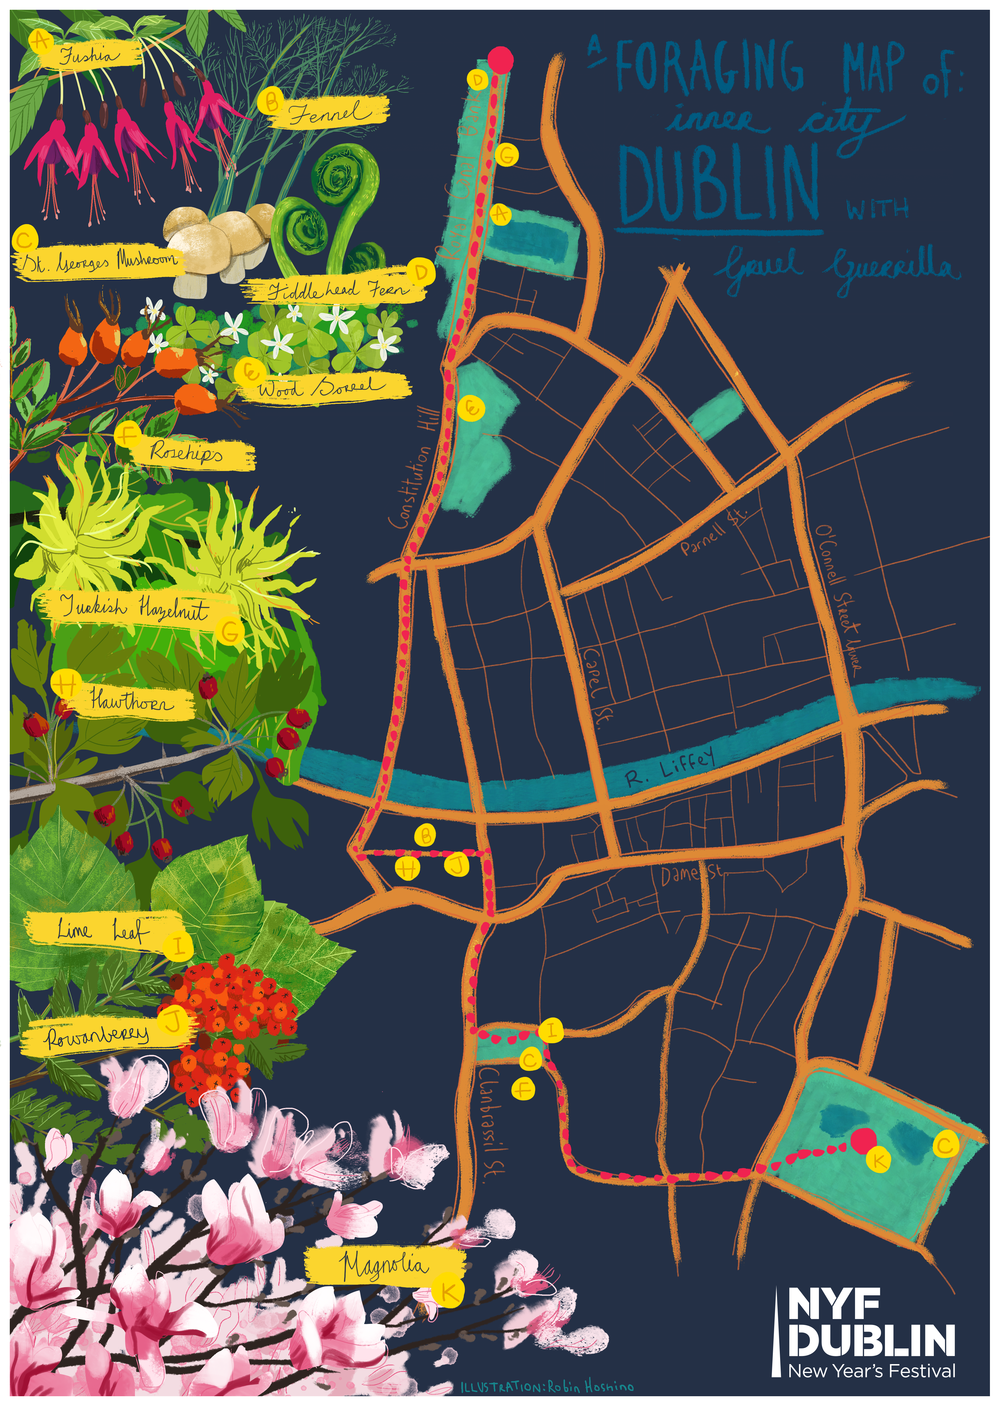 Foraging Map